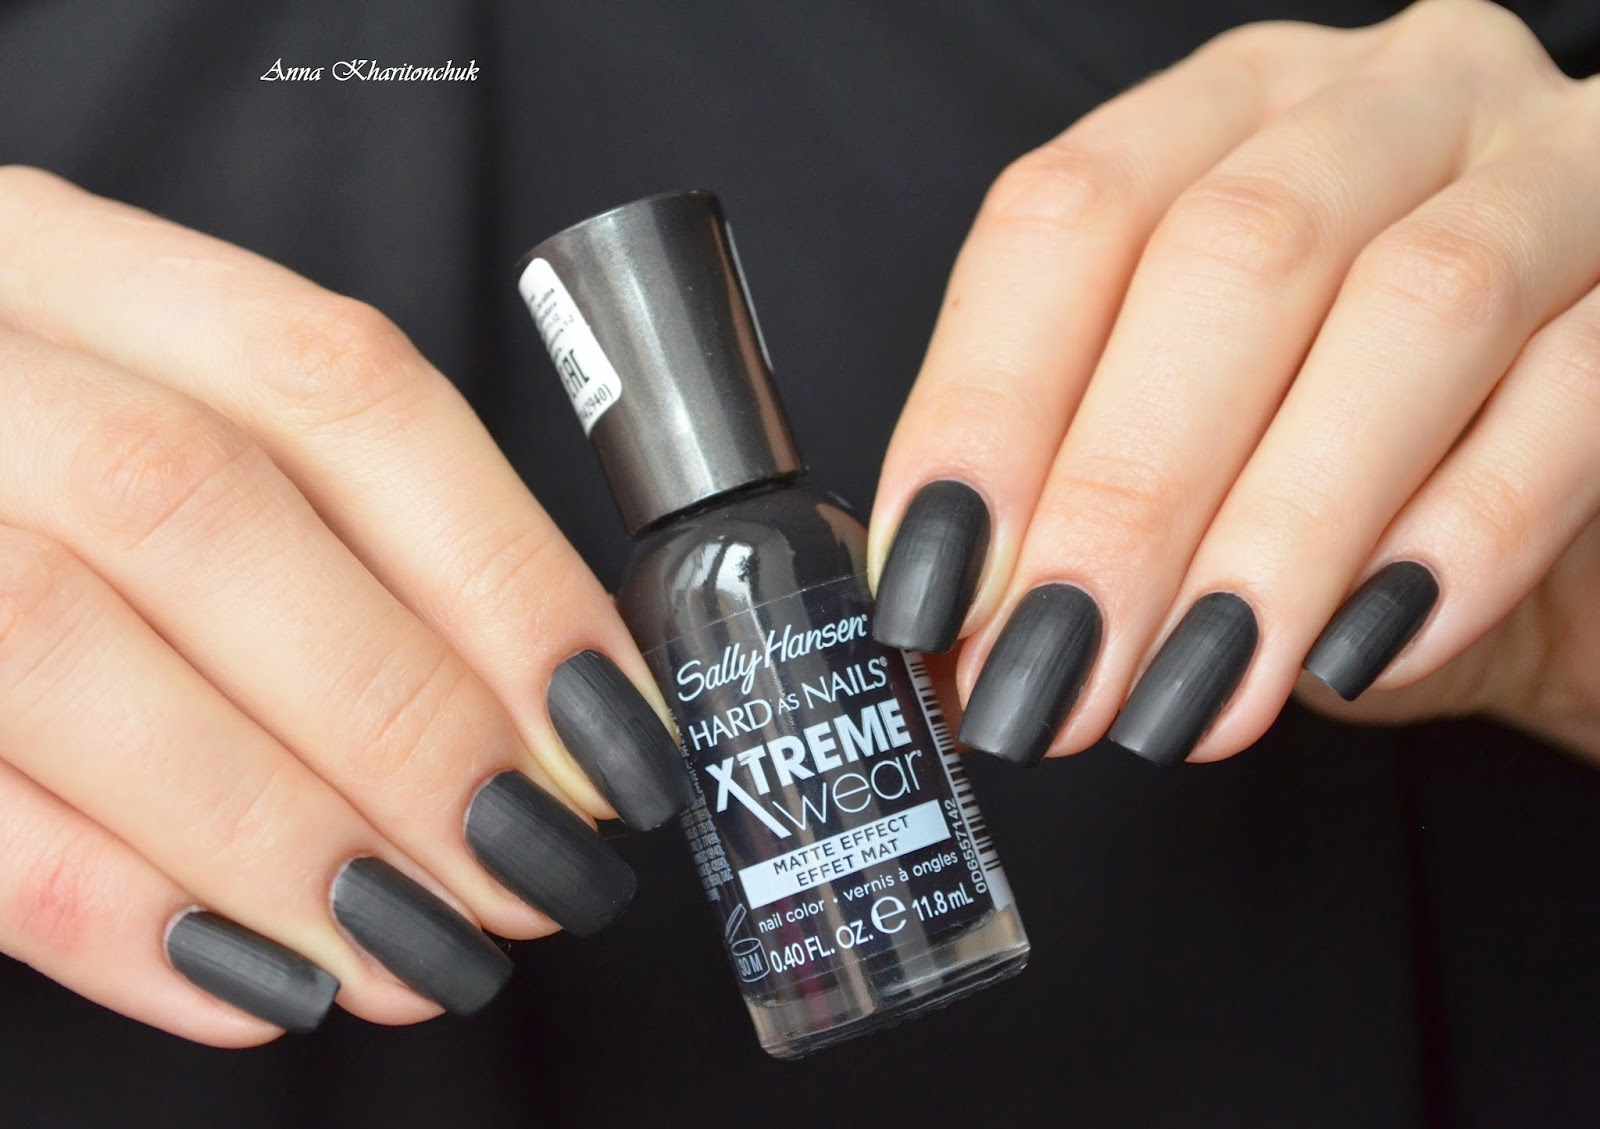 Sally Hansen Hard as Nails Xtreme Wear Matte Effect # 940 Chain Mail и Sally Hansen Hard as Nails Xtreme Wear Glitter Effect # 910 Rouge Red